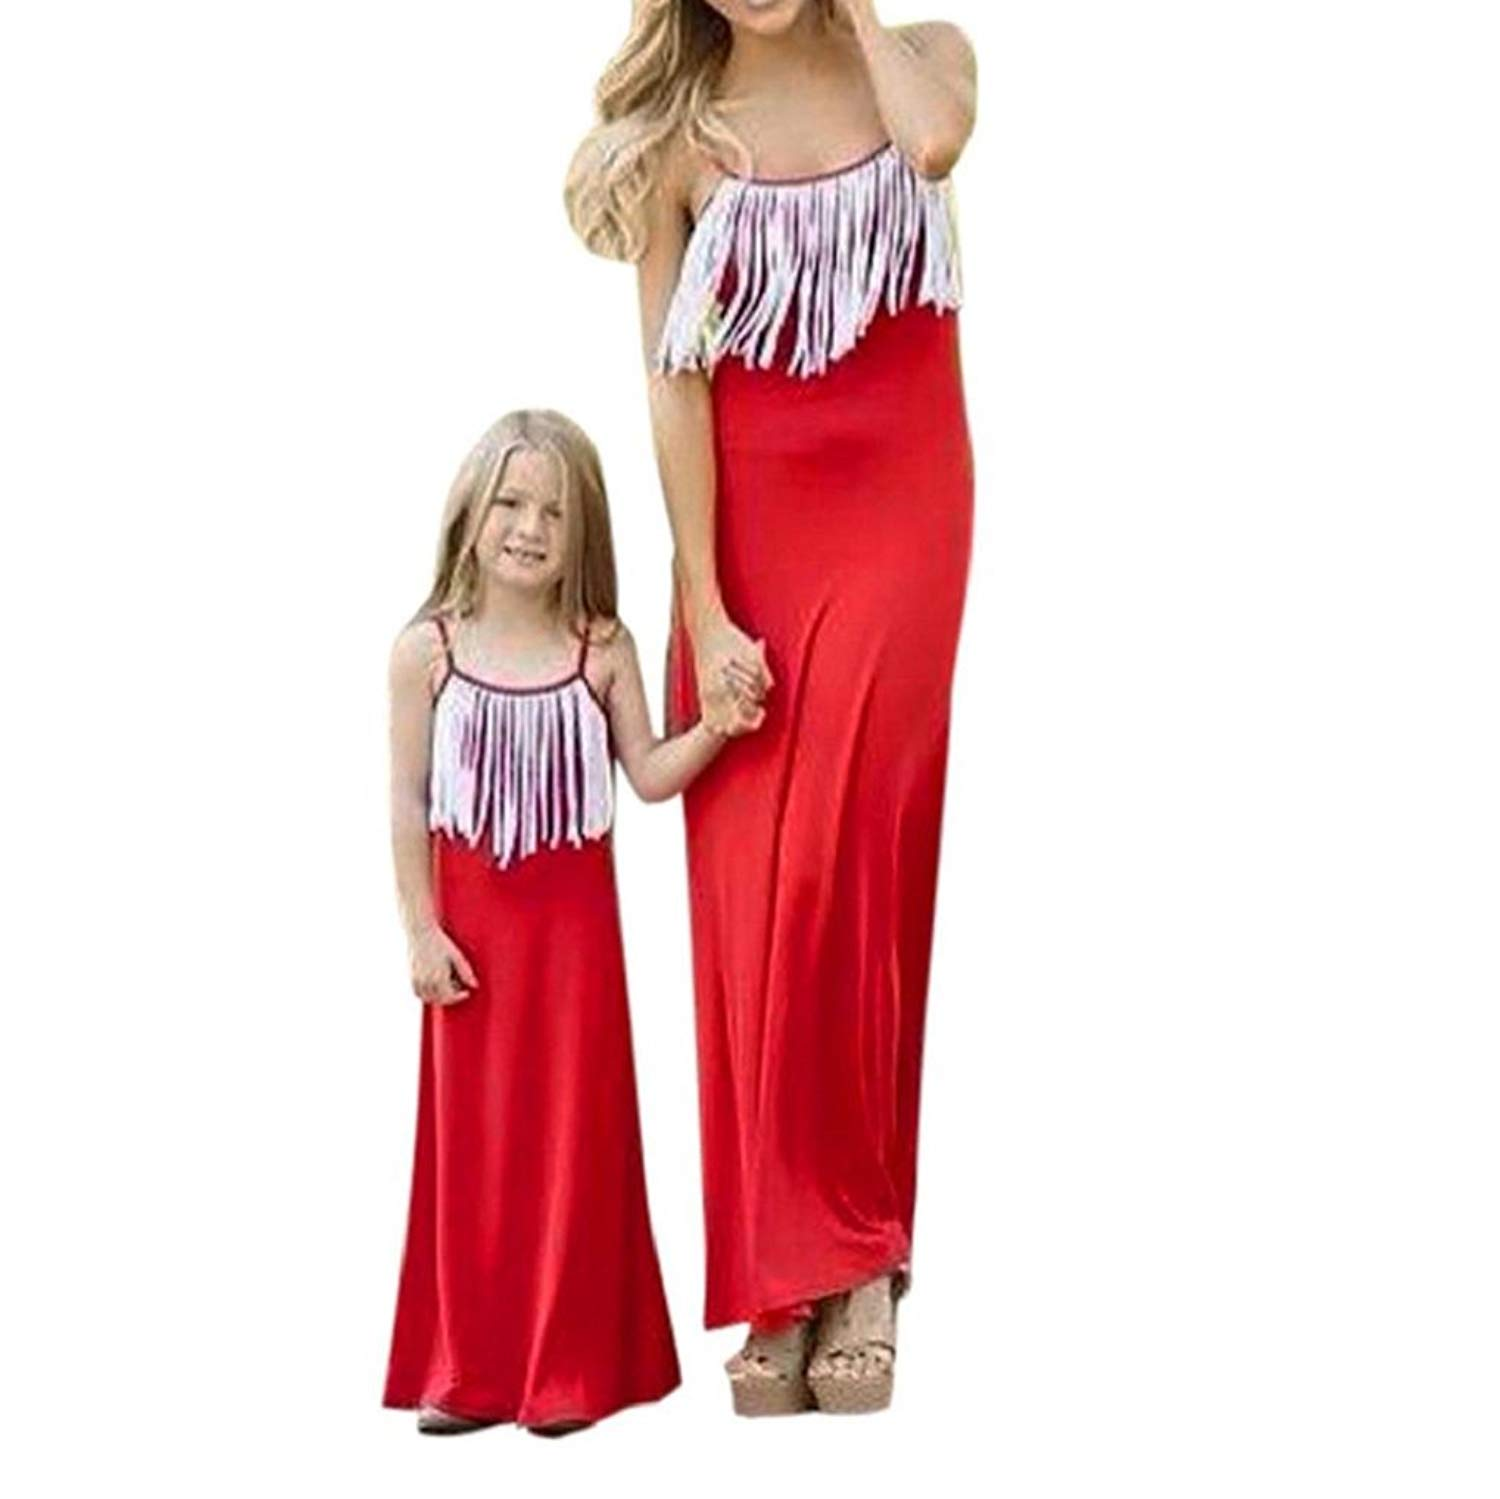 df95492f2a1c Get Quotations · Appoi Matching Dress for Mommy and Daughter Summer Dress  Sleeveless Strap Long Maxi Dress Mom&Me Family